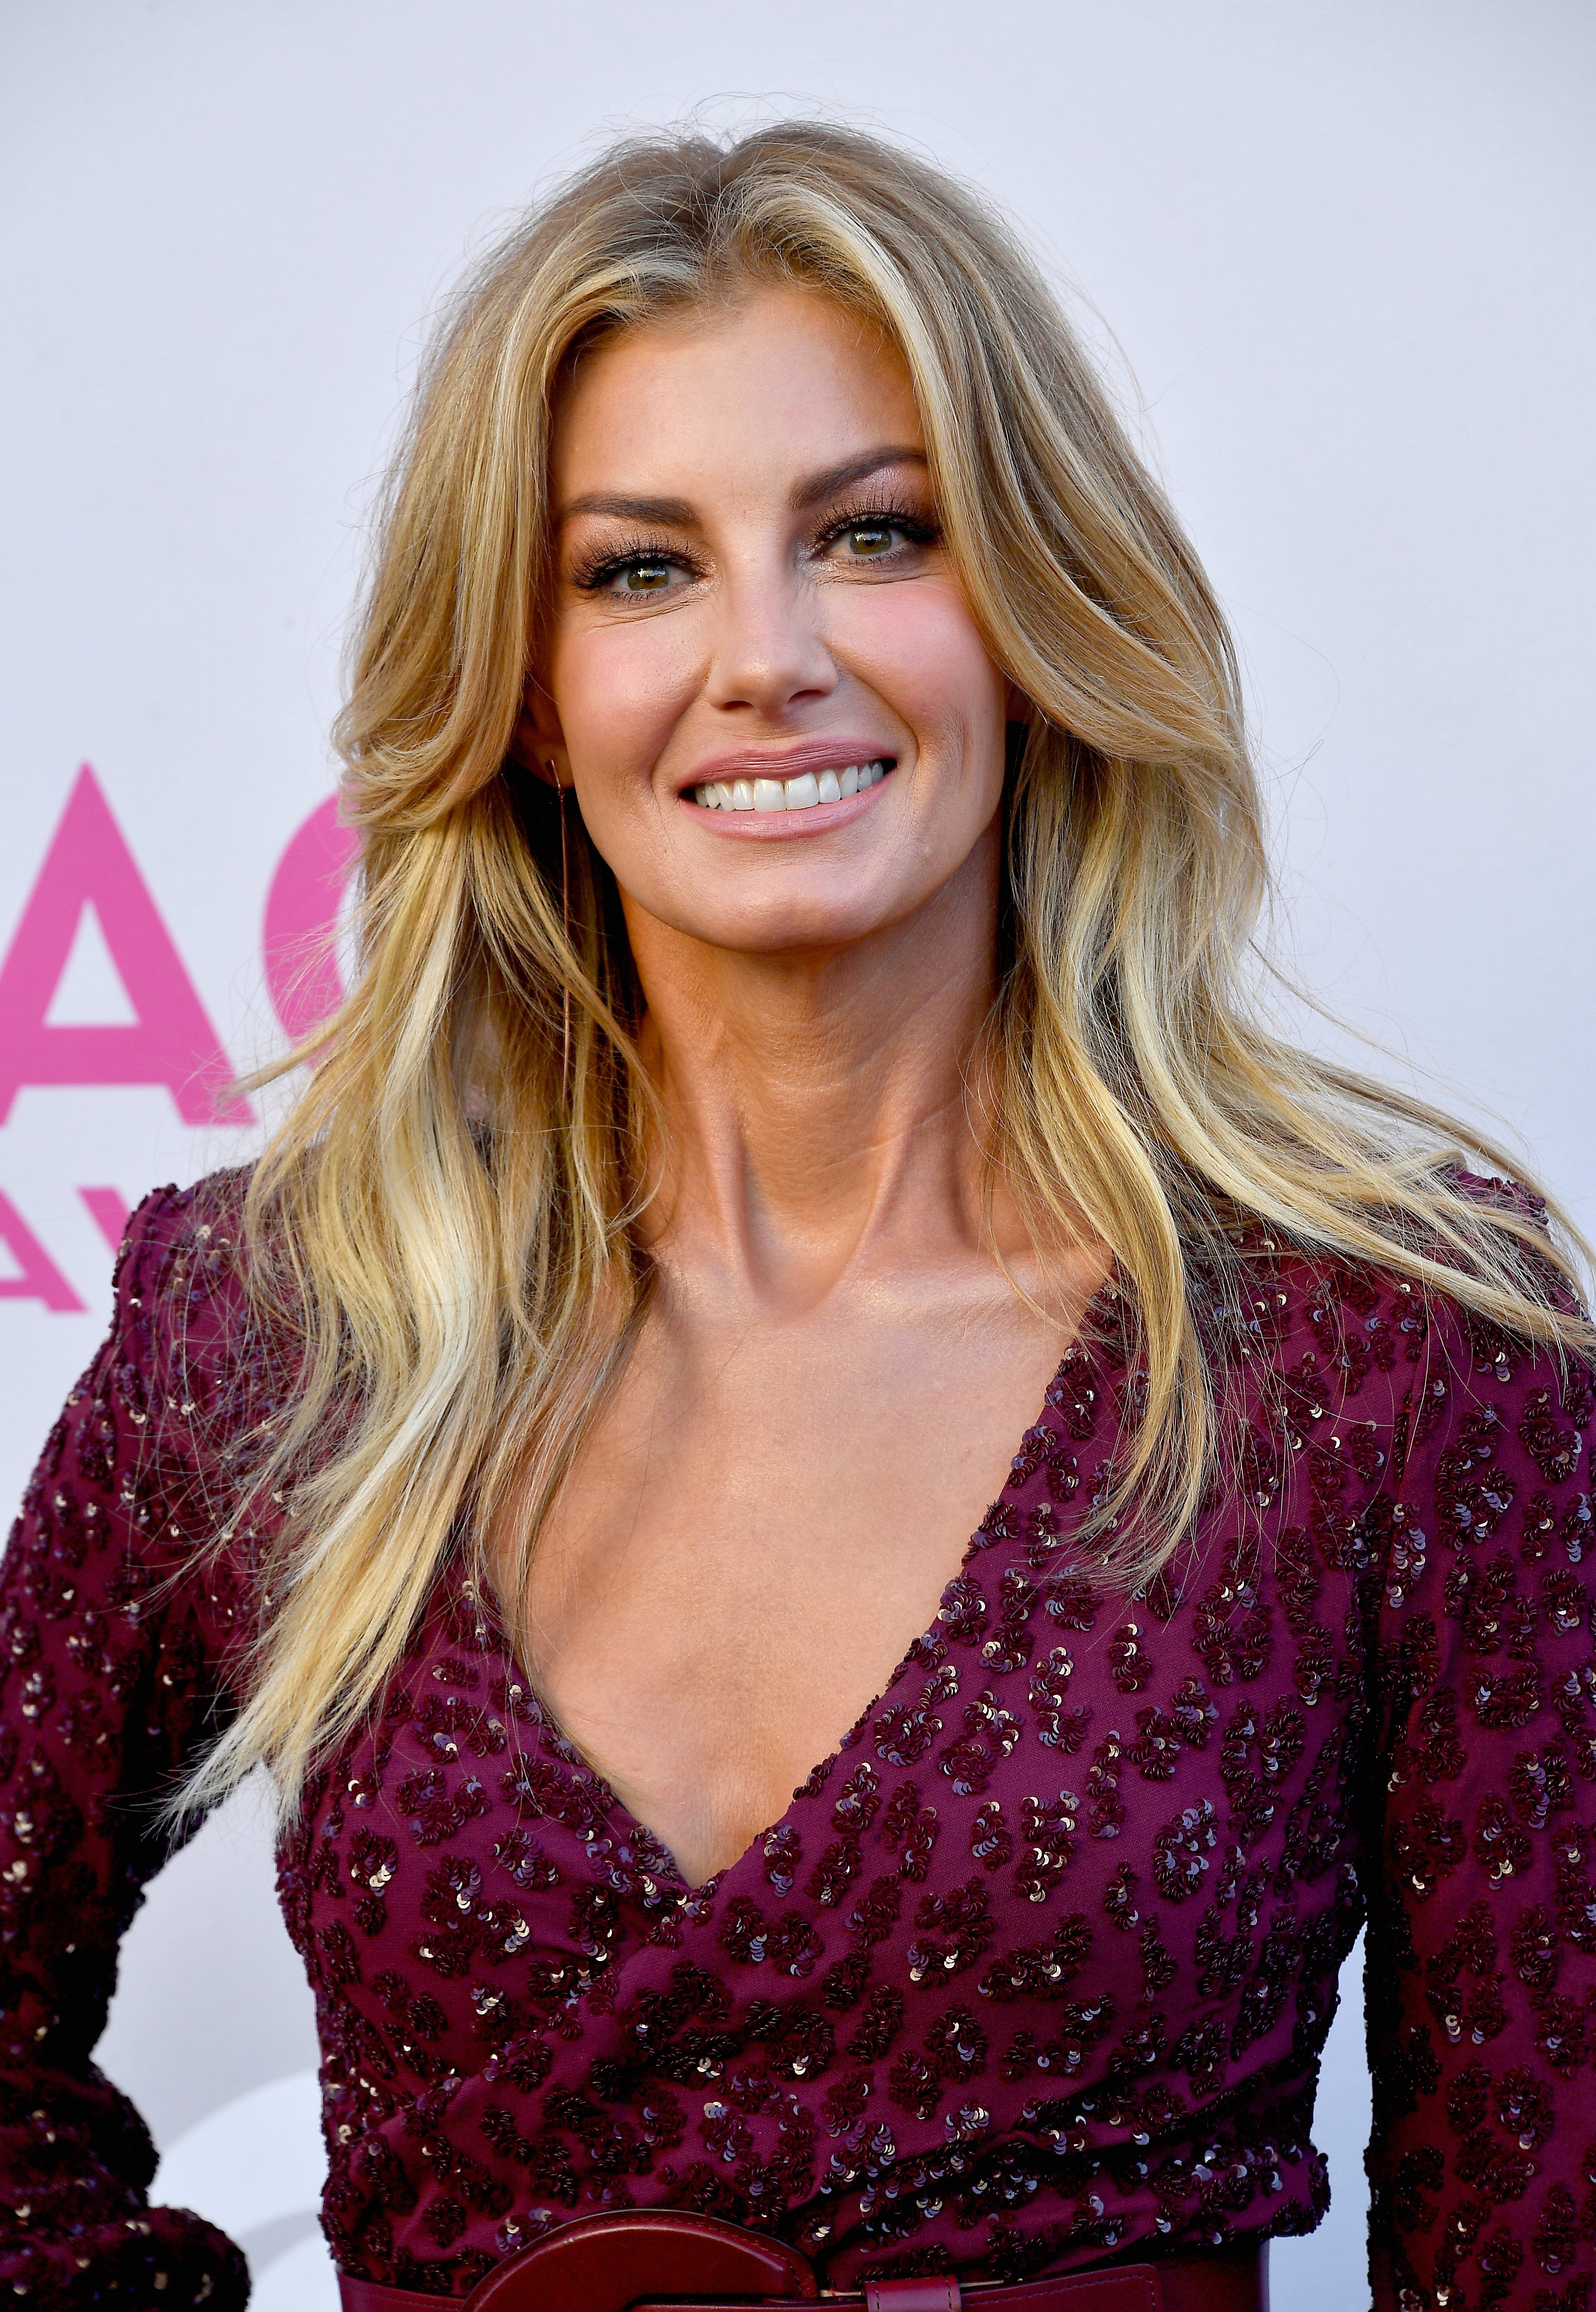 Faith Hill attends the 52nd Academy Of Country Music Awards on April 2, 2017, in Las Vegas, Nevada.   Source: Getty Images.